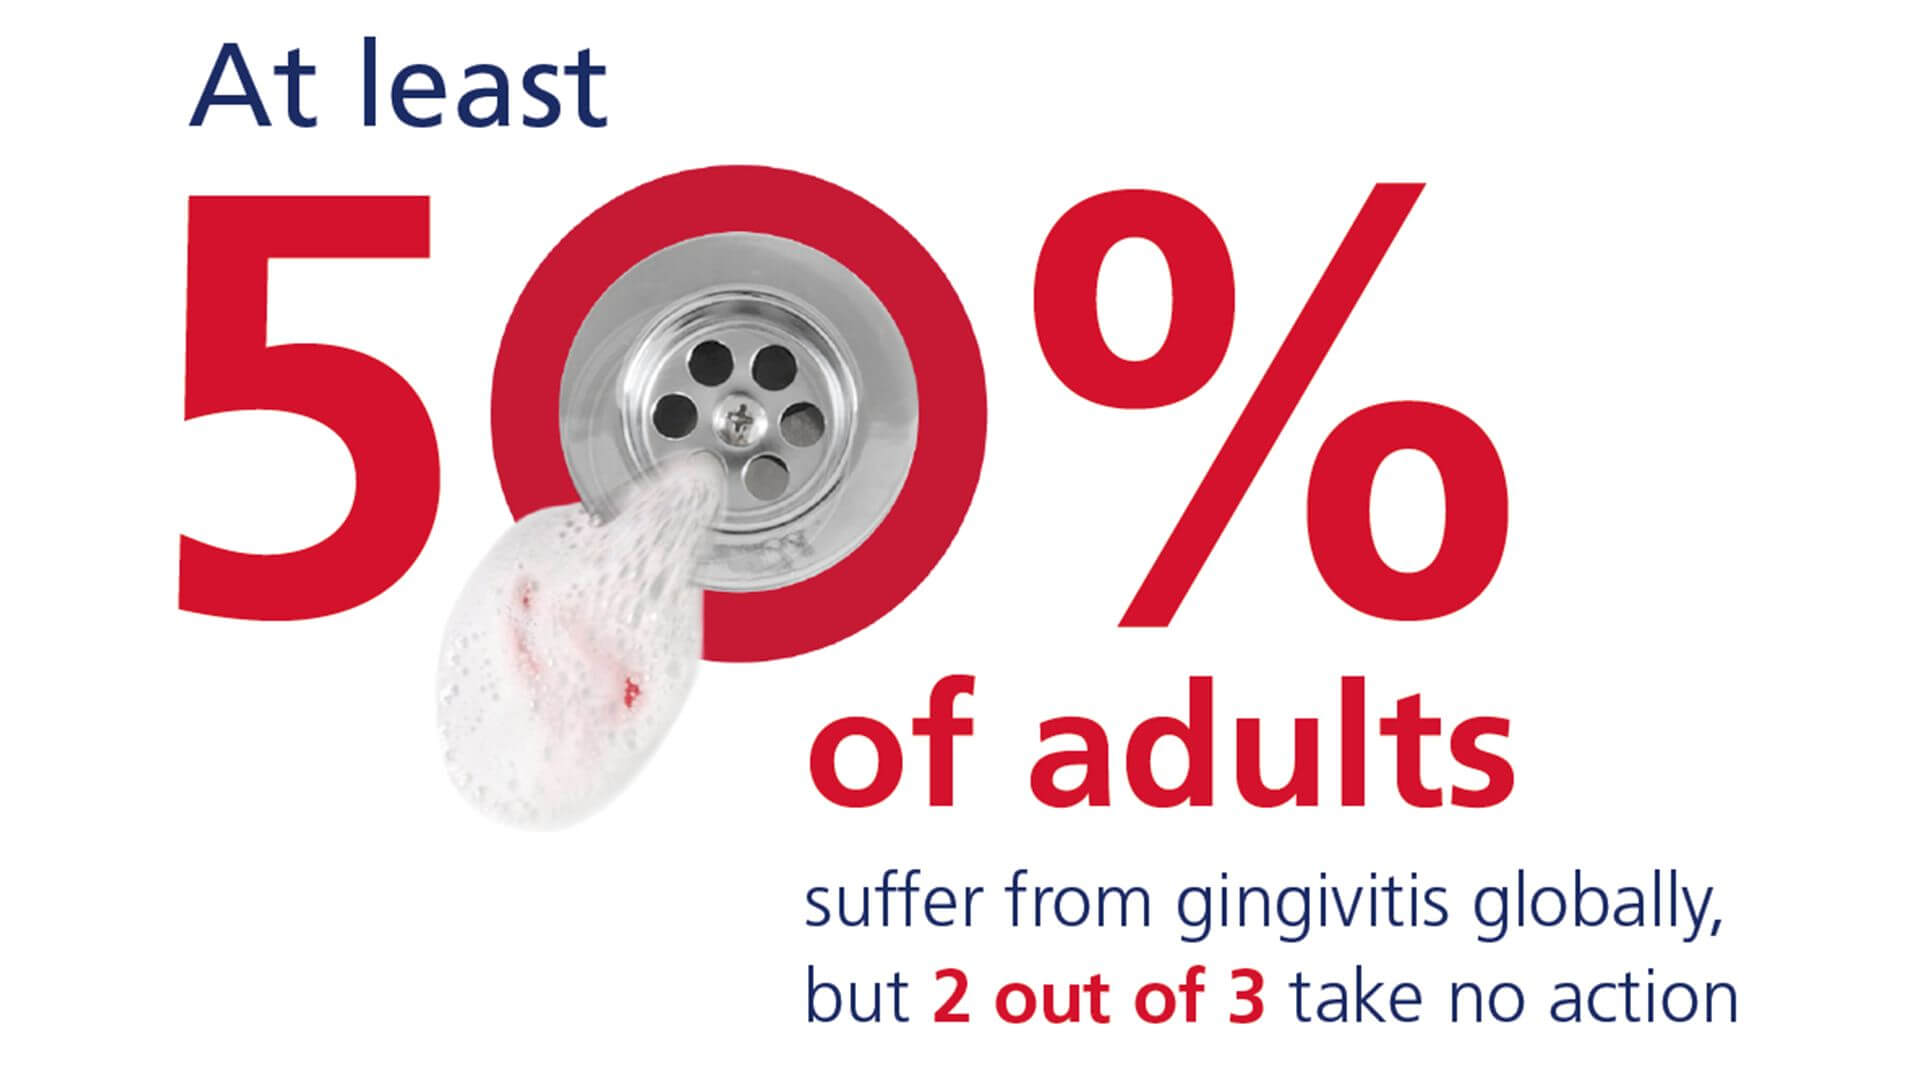 At least 50% of adults suffer from gingivitis globally, but 2 out of 3 take no action